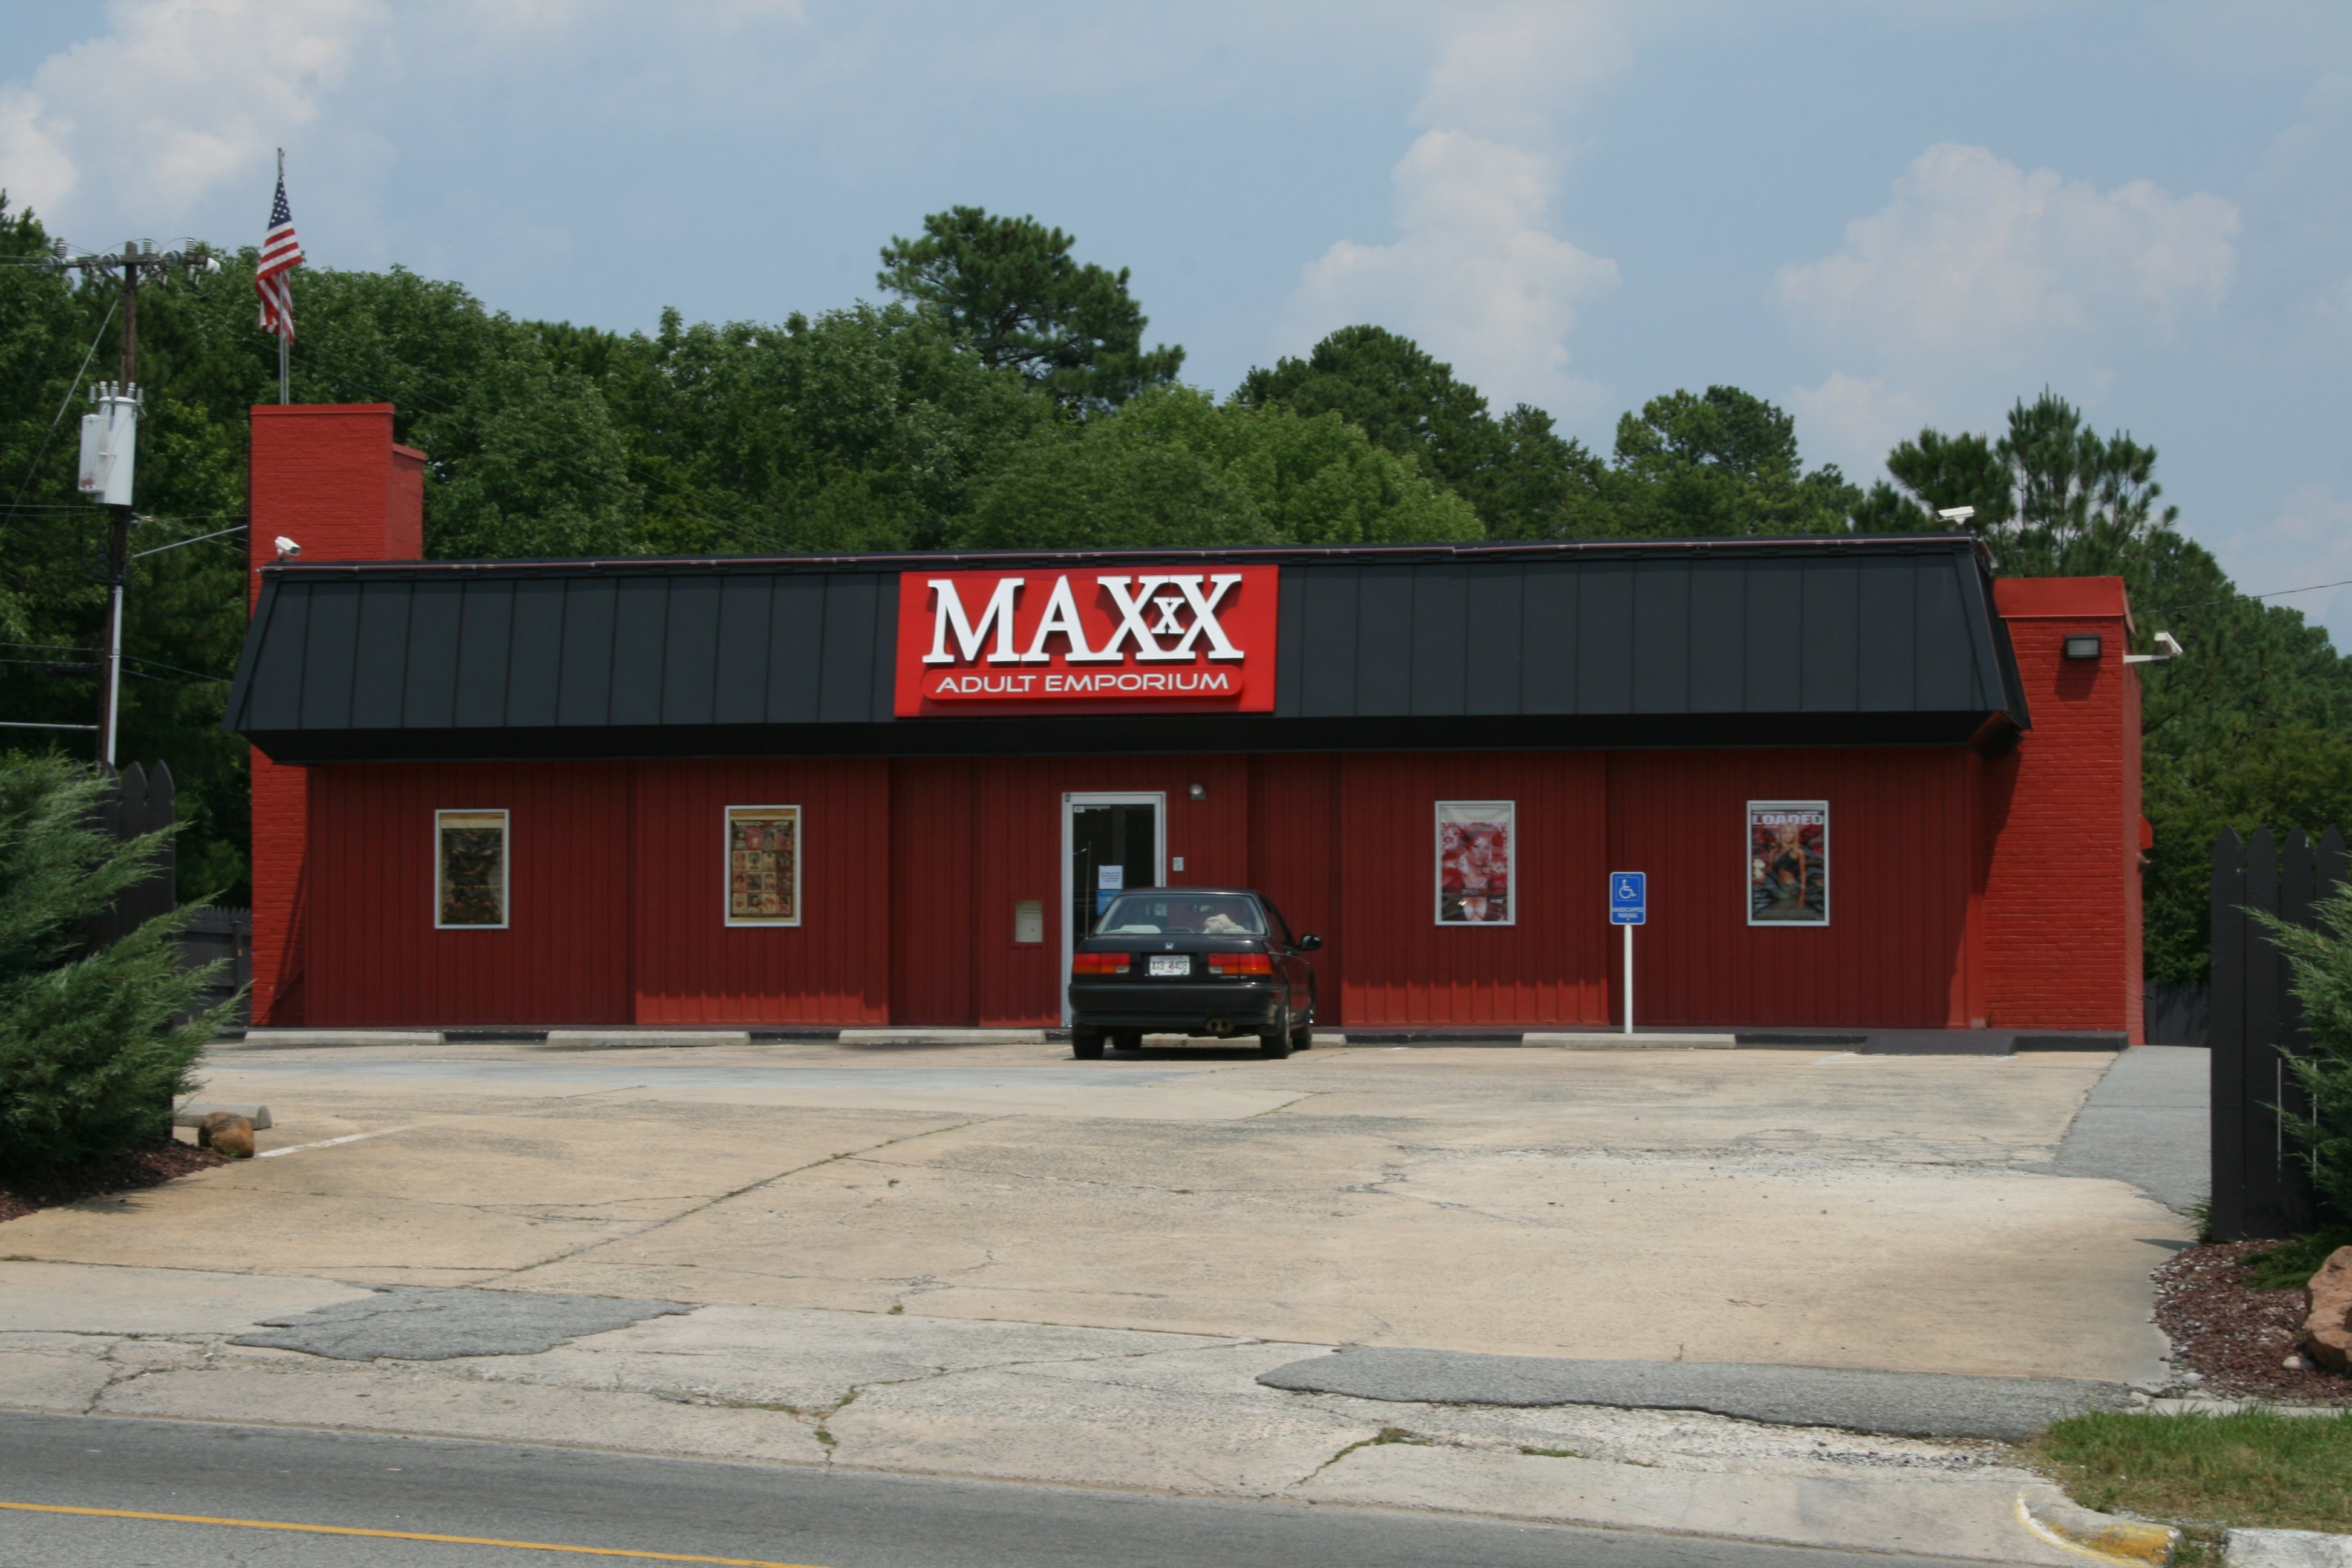 2008 07 04 MAXxX Adult Emporium in Durham Try download stickman blowjob gif galleries, cumshot ranch movies tgp and ...